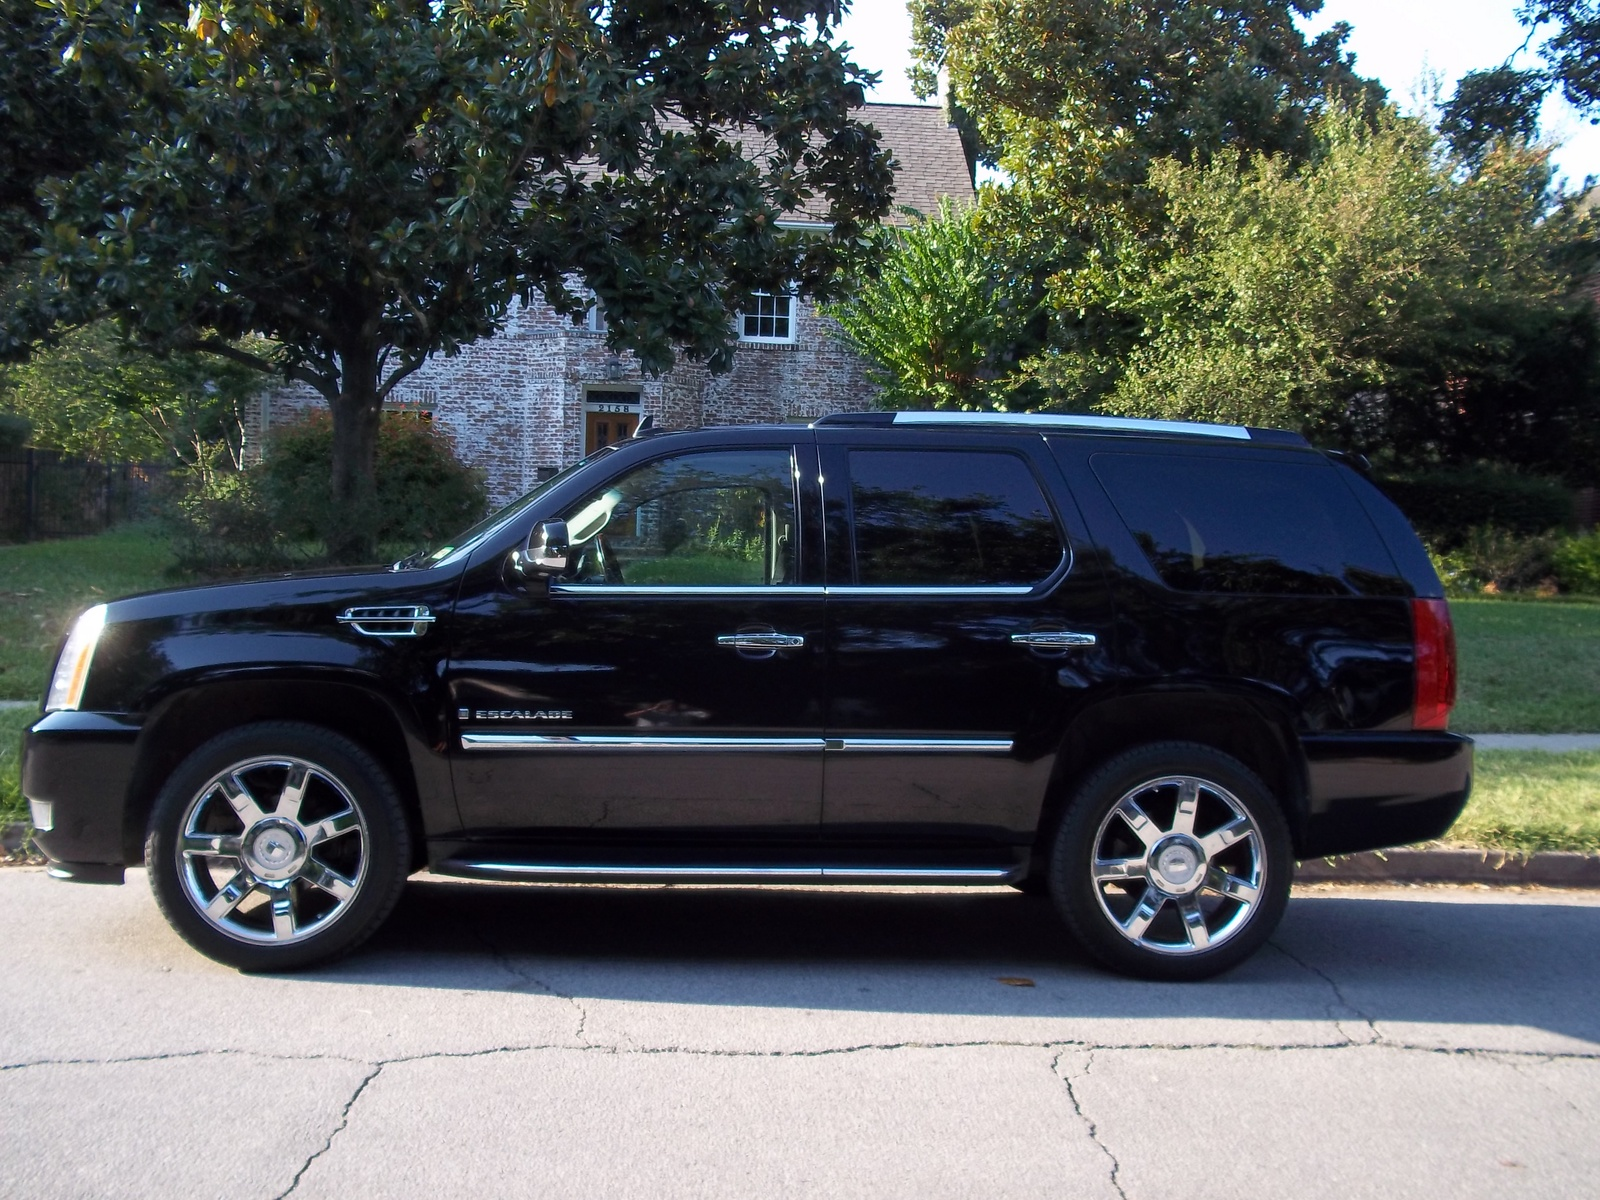 Used Cars for Sale Near Me by Owner Craigslist Lovely Used for Sale Lovely Used Cars for Sale Under 1000 by Owner